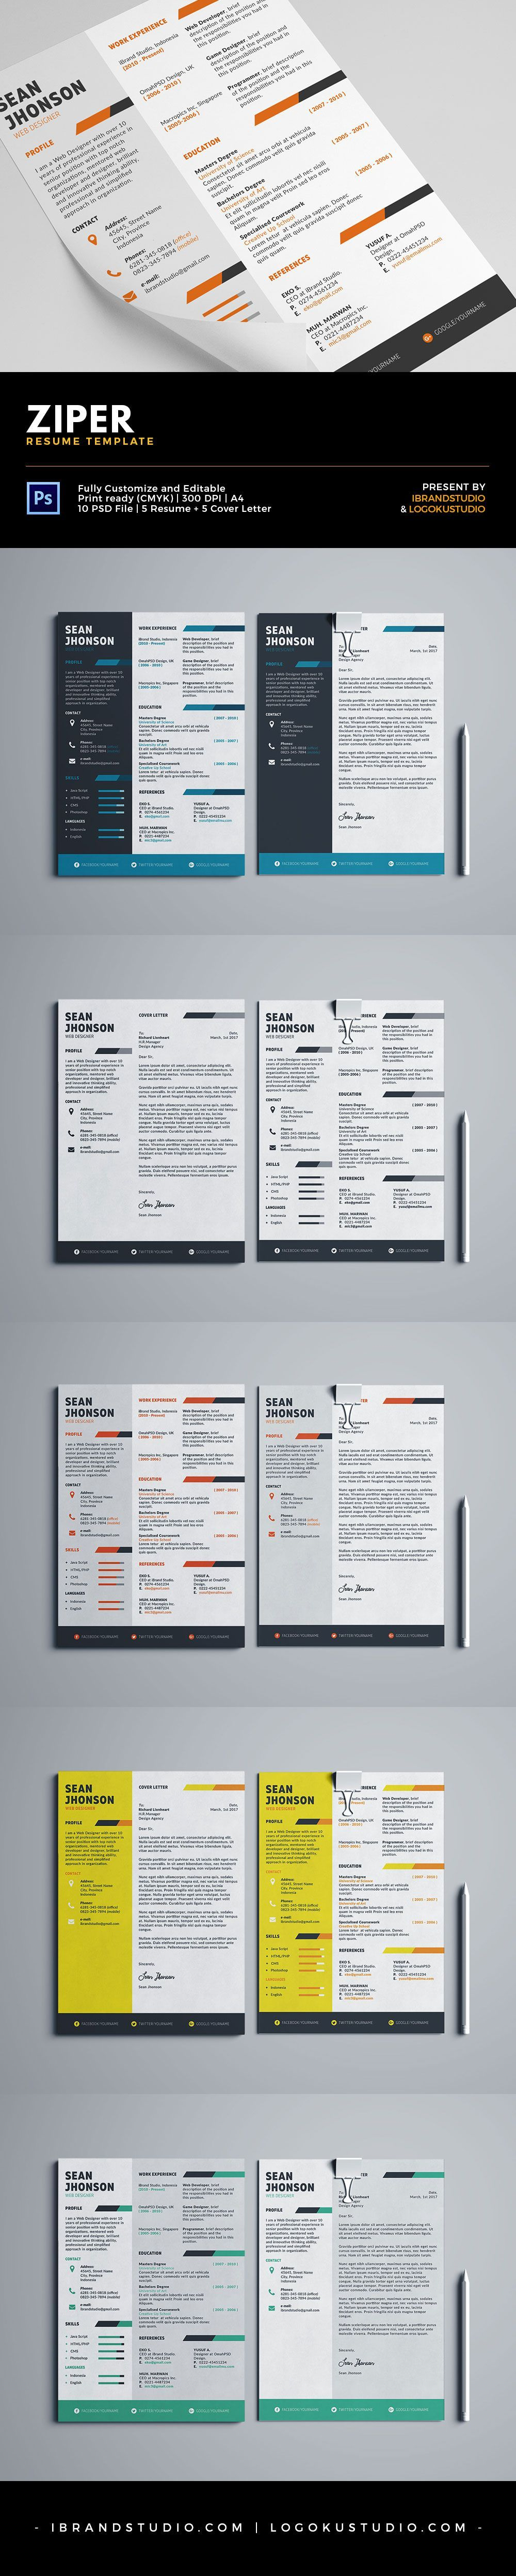 Word Cv Templates 2007%0A Free Ziper Resume Template and Cover Letter    Styles  PSD